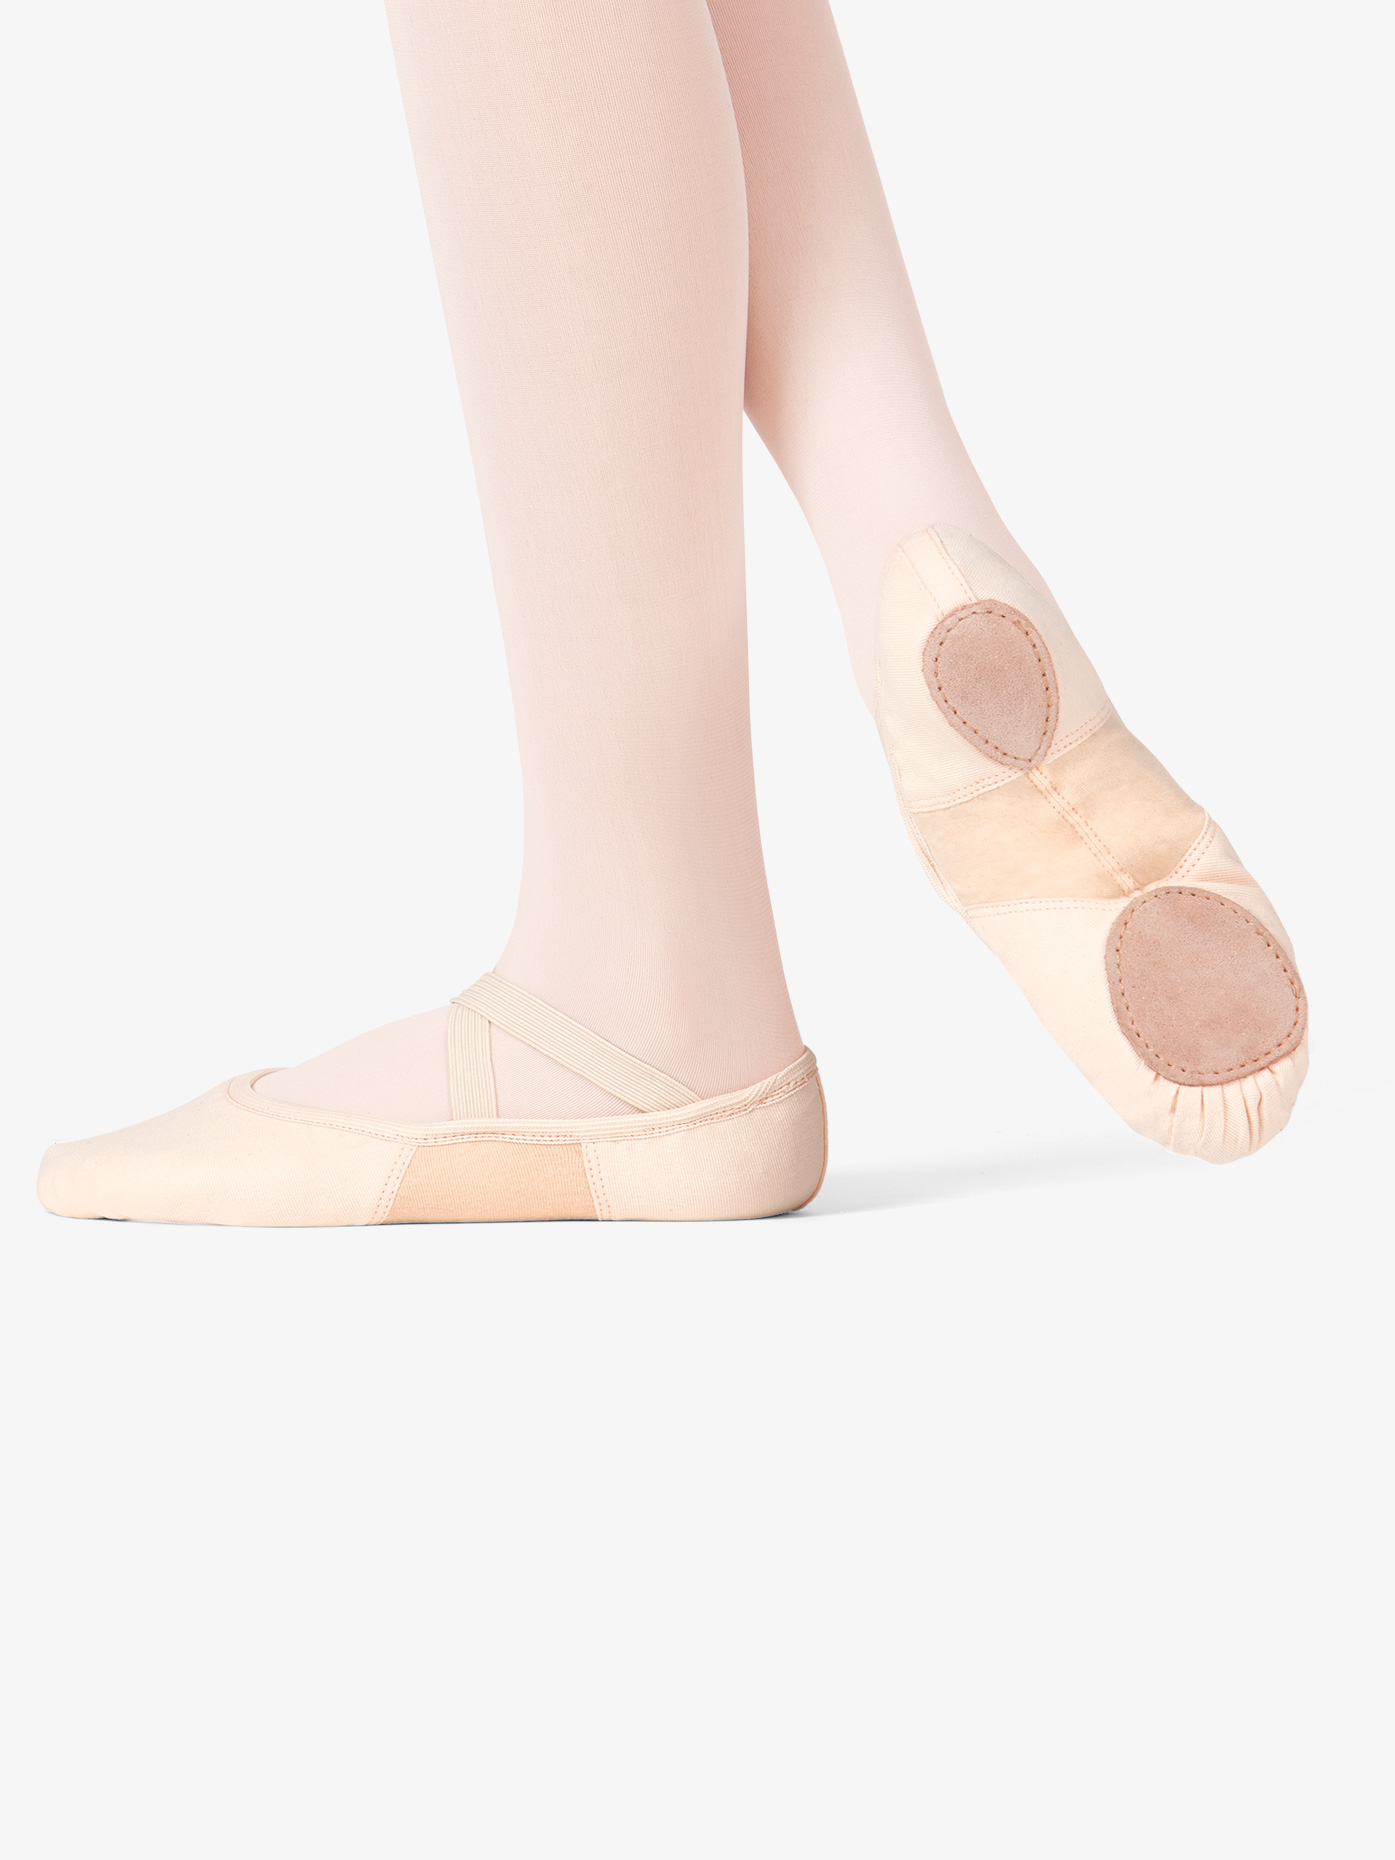 Theatricals Girls SofTouch Canvas Stretch Split-Sole Ballet Shoes T2915C